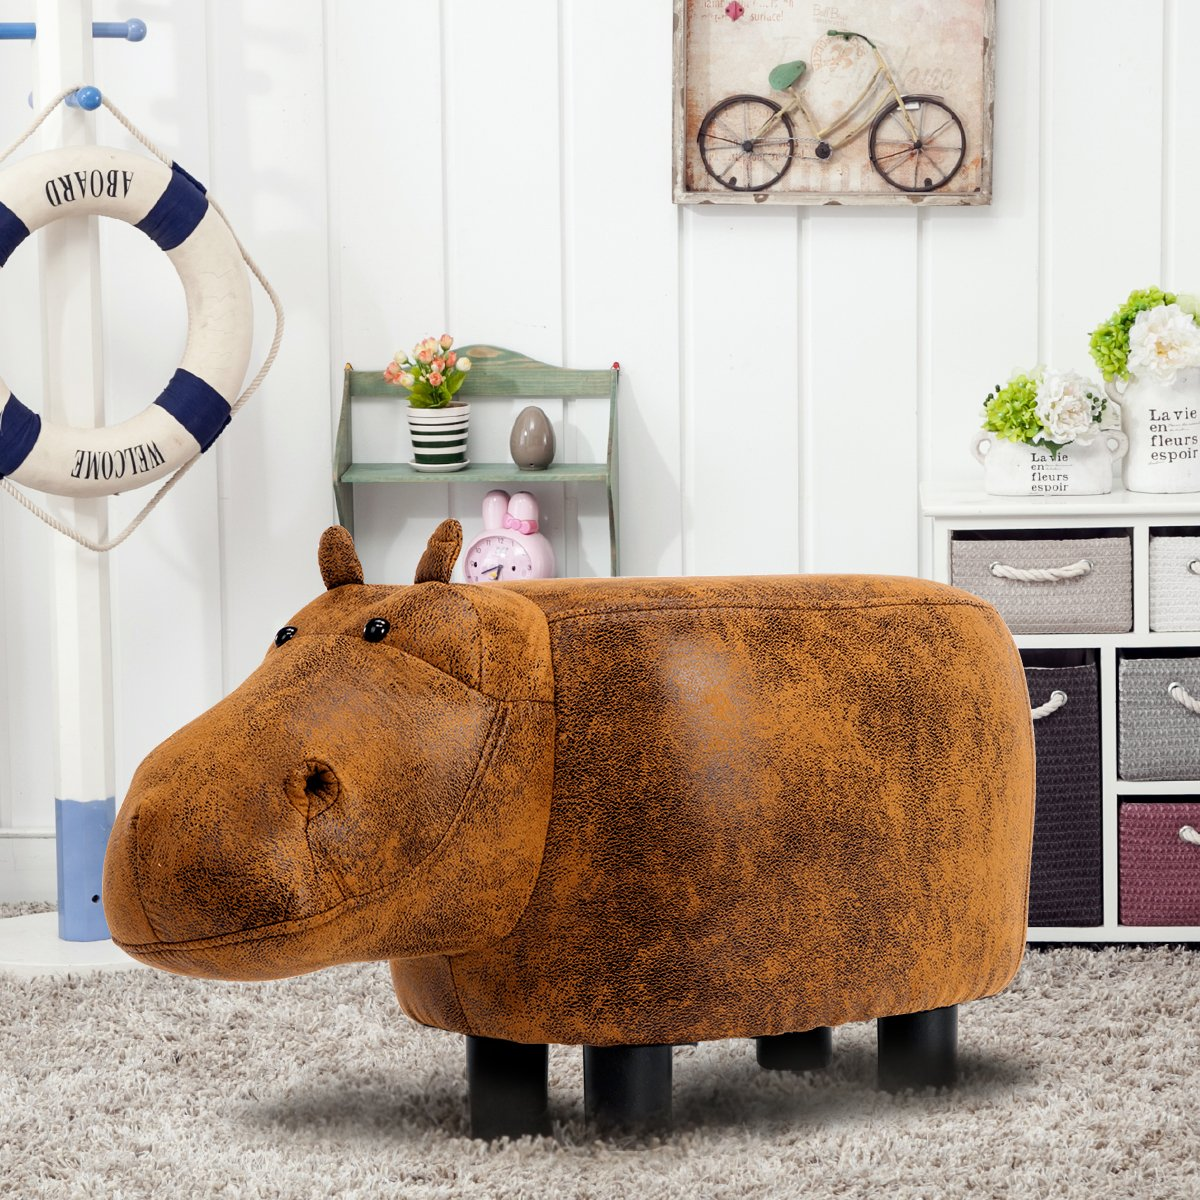 Guteen Upholstered Ride-on Toy Seat Ottoman Footrest Stool with Vivid Adorable Animal-Like Features(Brown Hippo) by GUTEEN (Image #5)